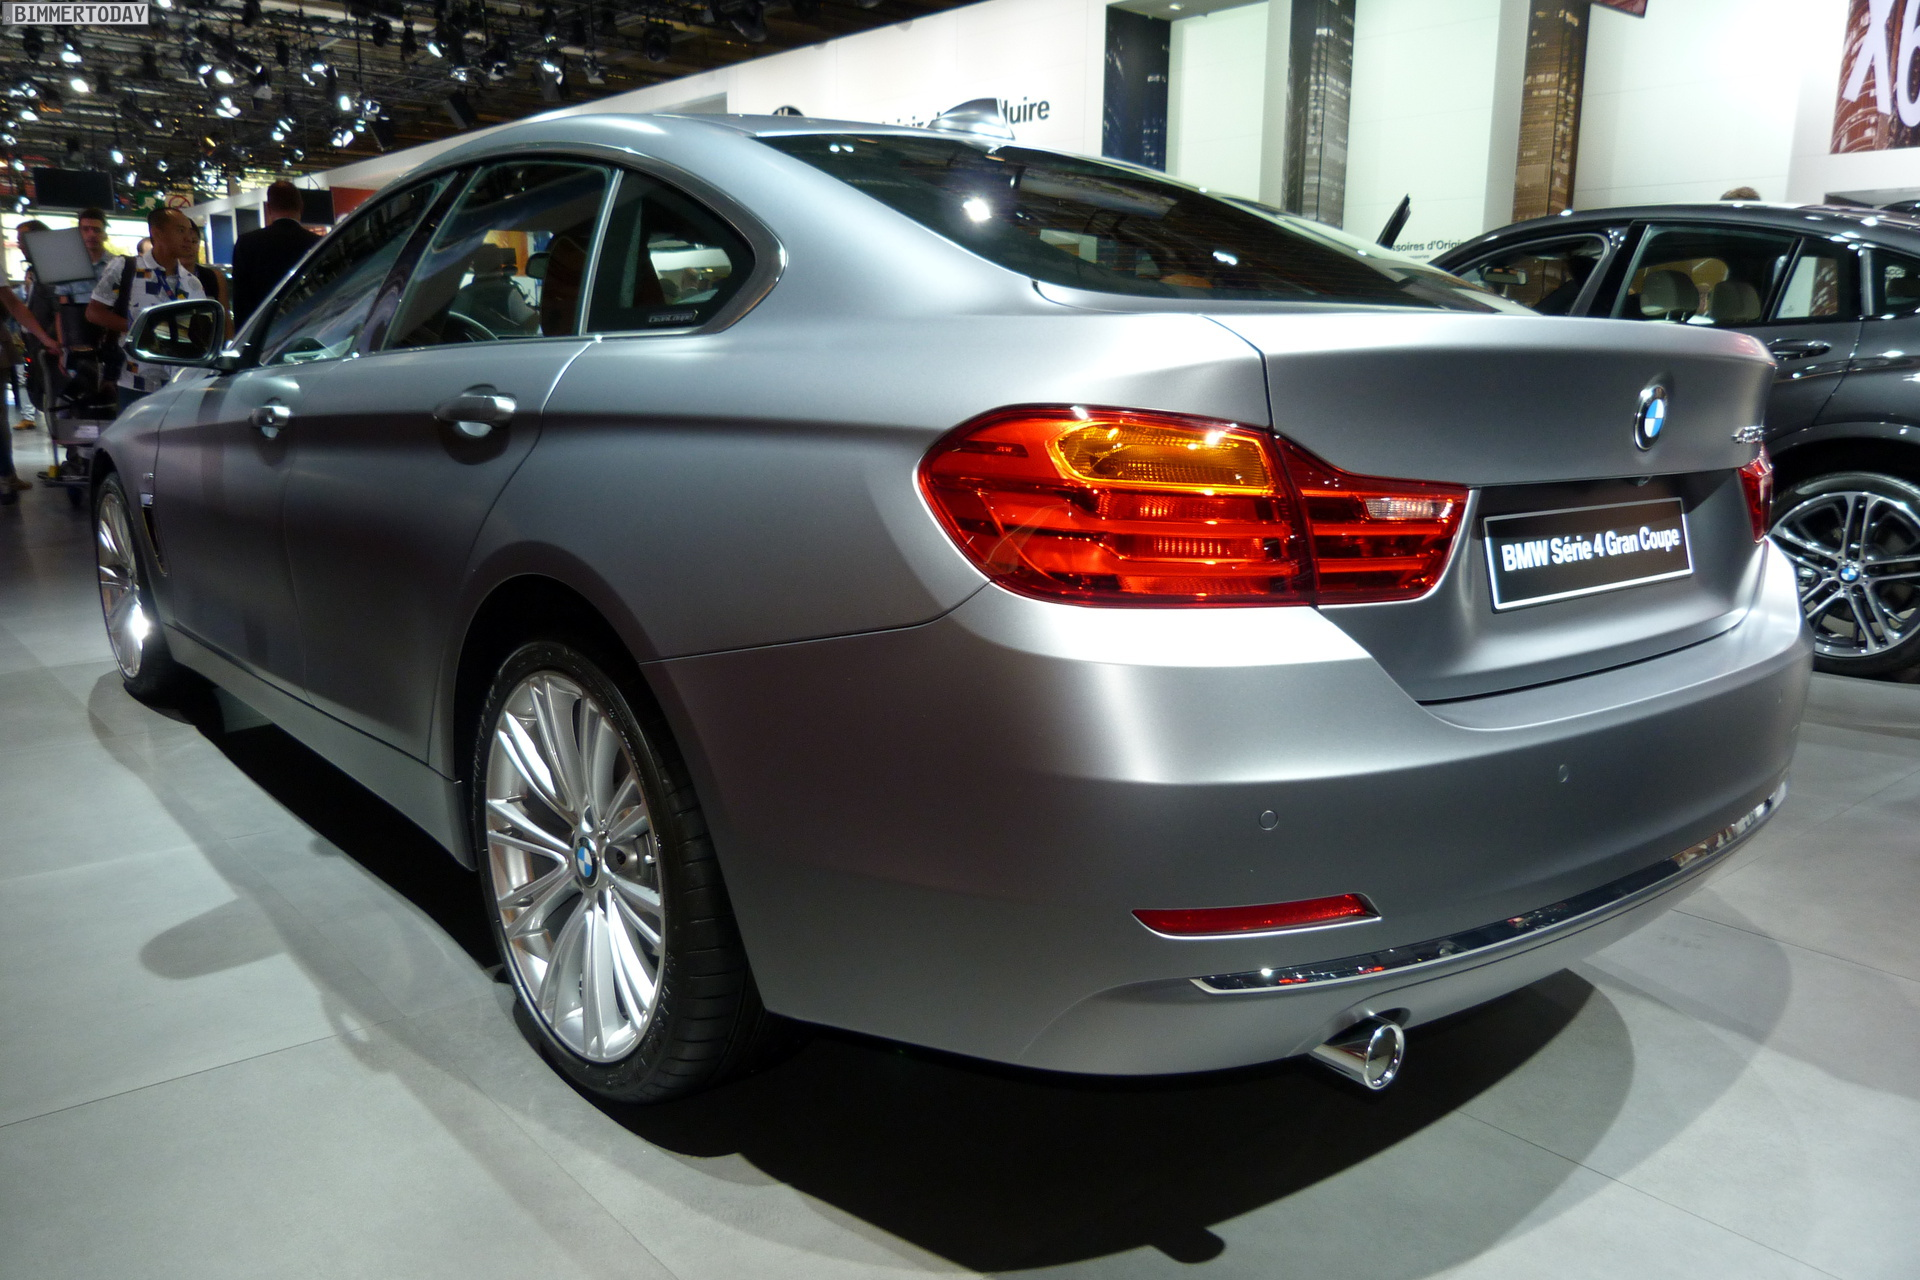 2014 Paris Motor Show Bmw 4 Series Gran Coupe In Frozen Cashmere Silver